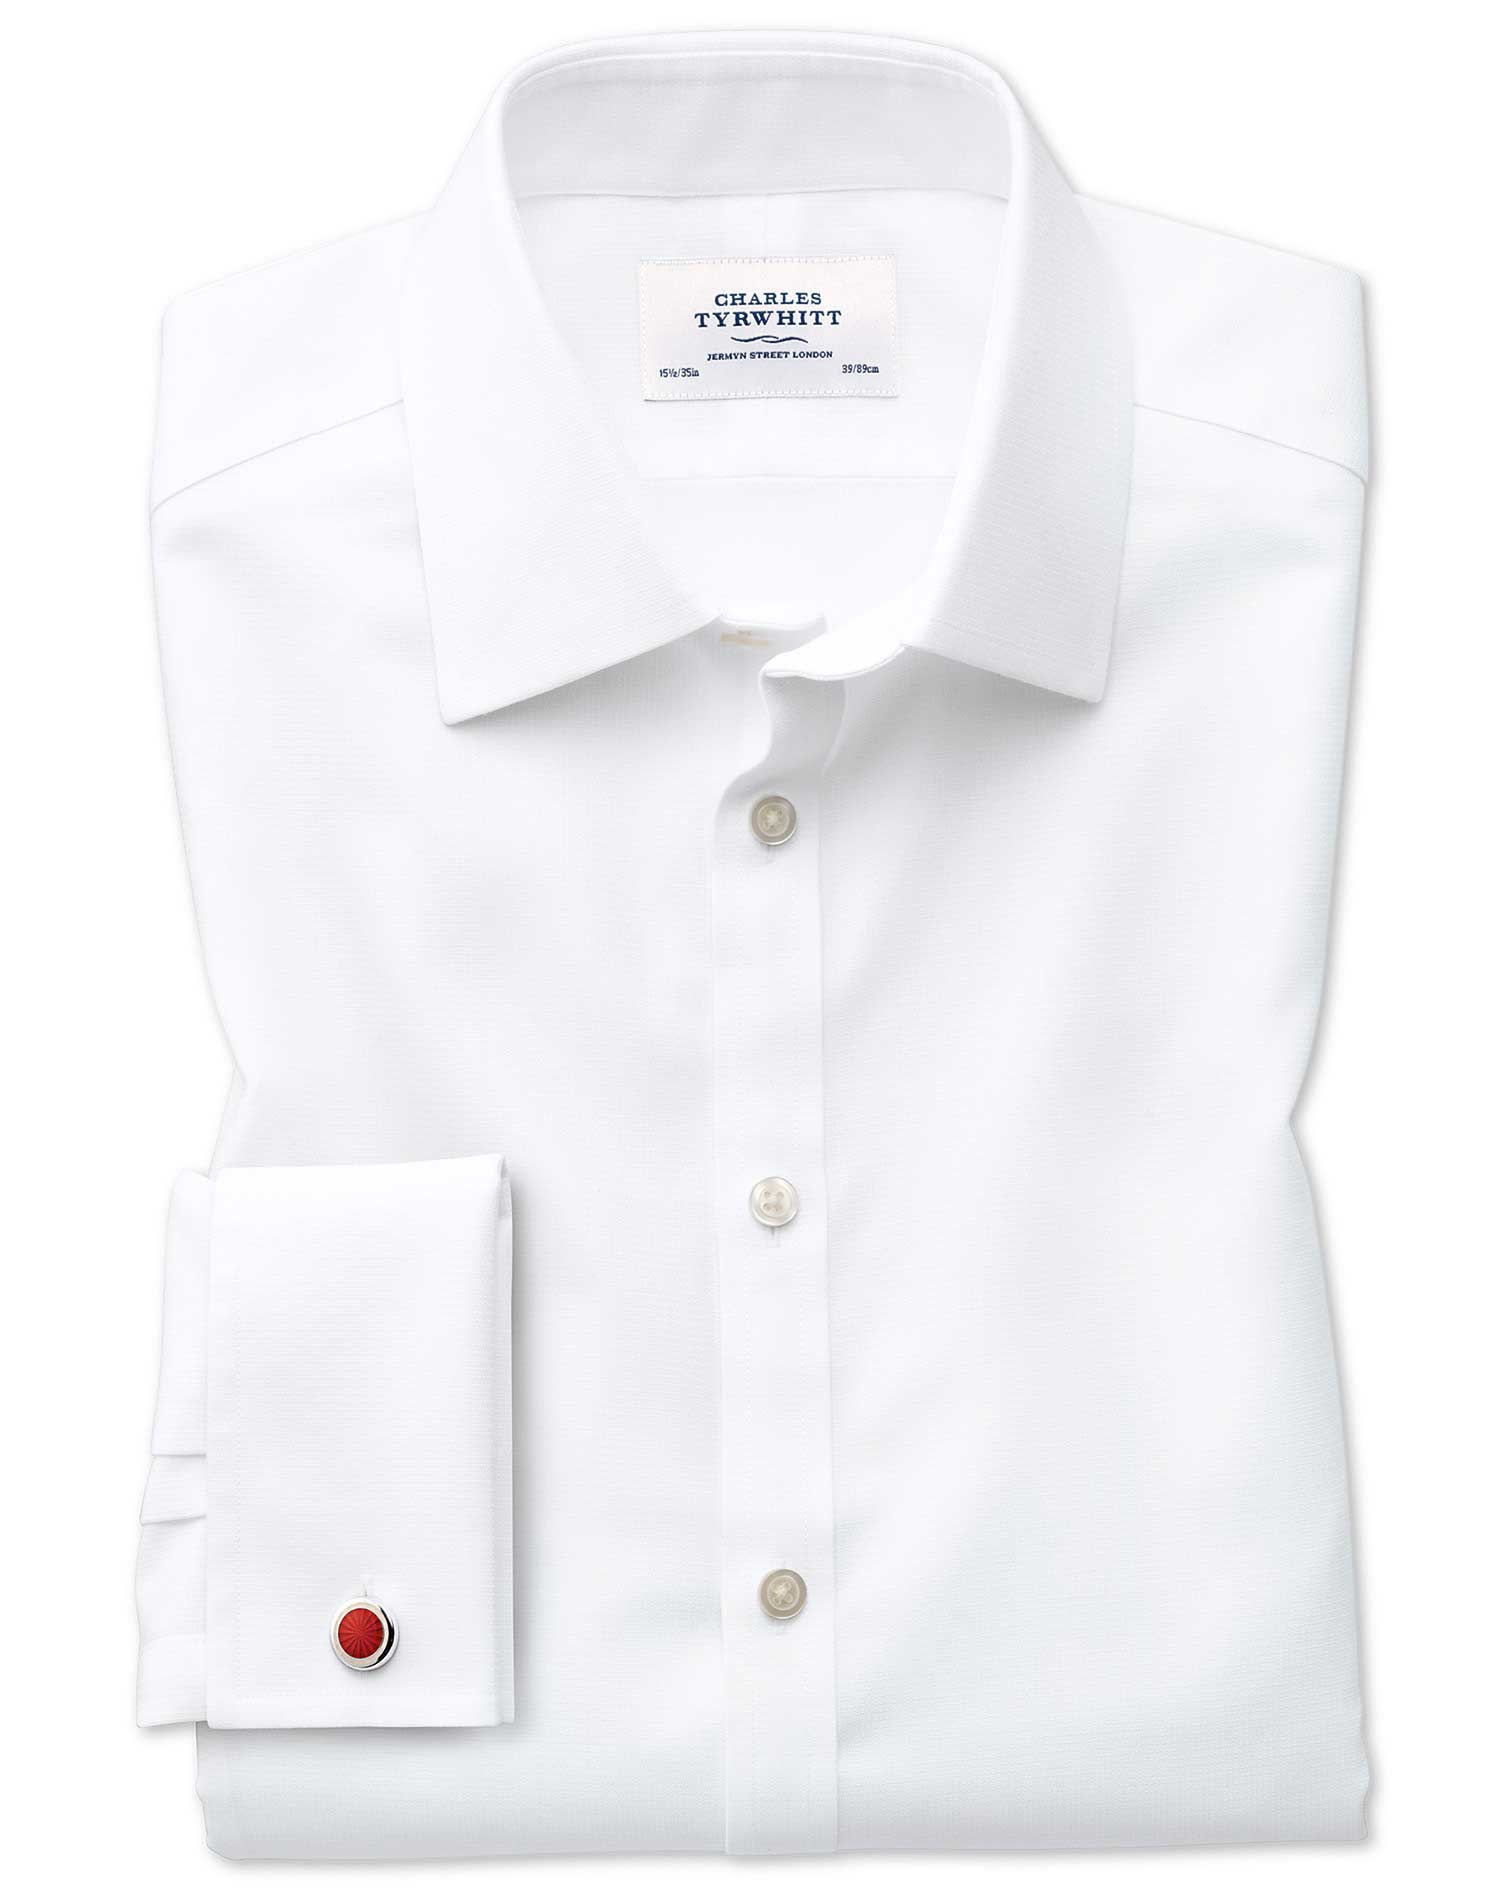 Slim Fit Non-Iron Square Weave White Cotton Formal Shirt Double Cuff Size 15.5/34 by Charles Tyrwhit